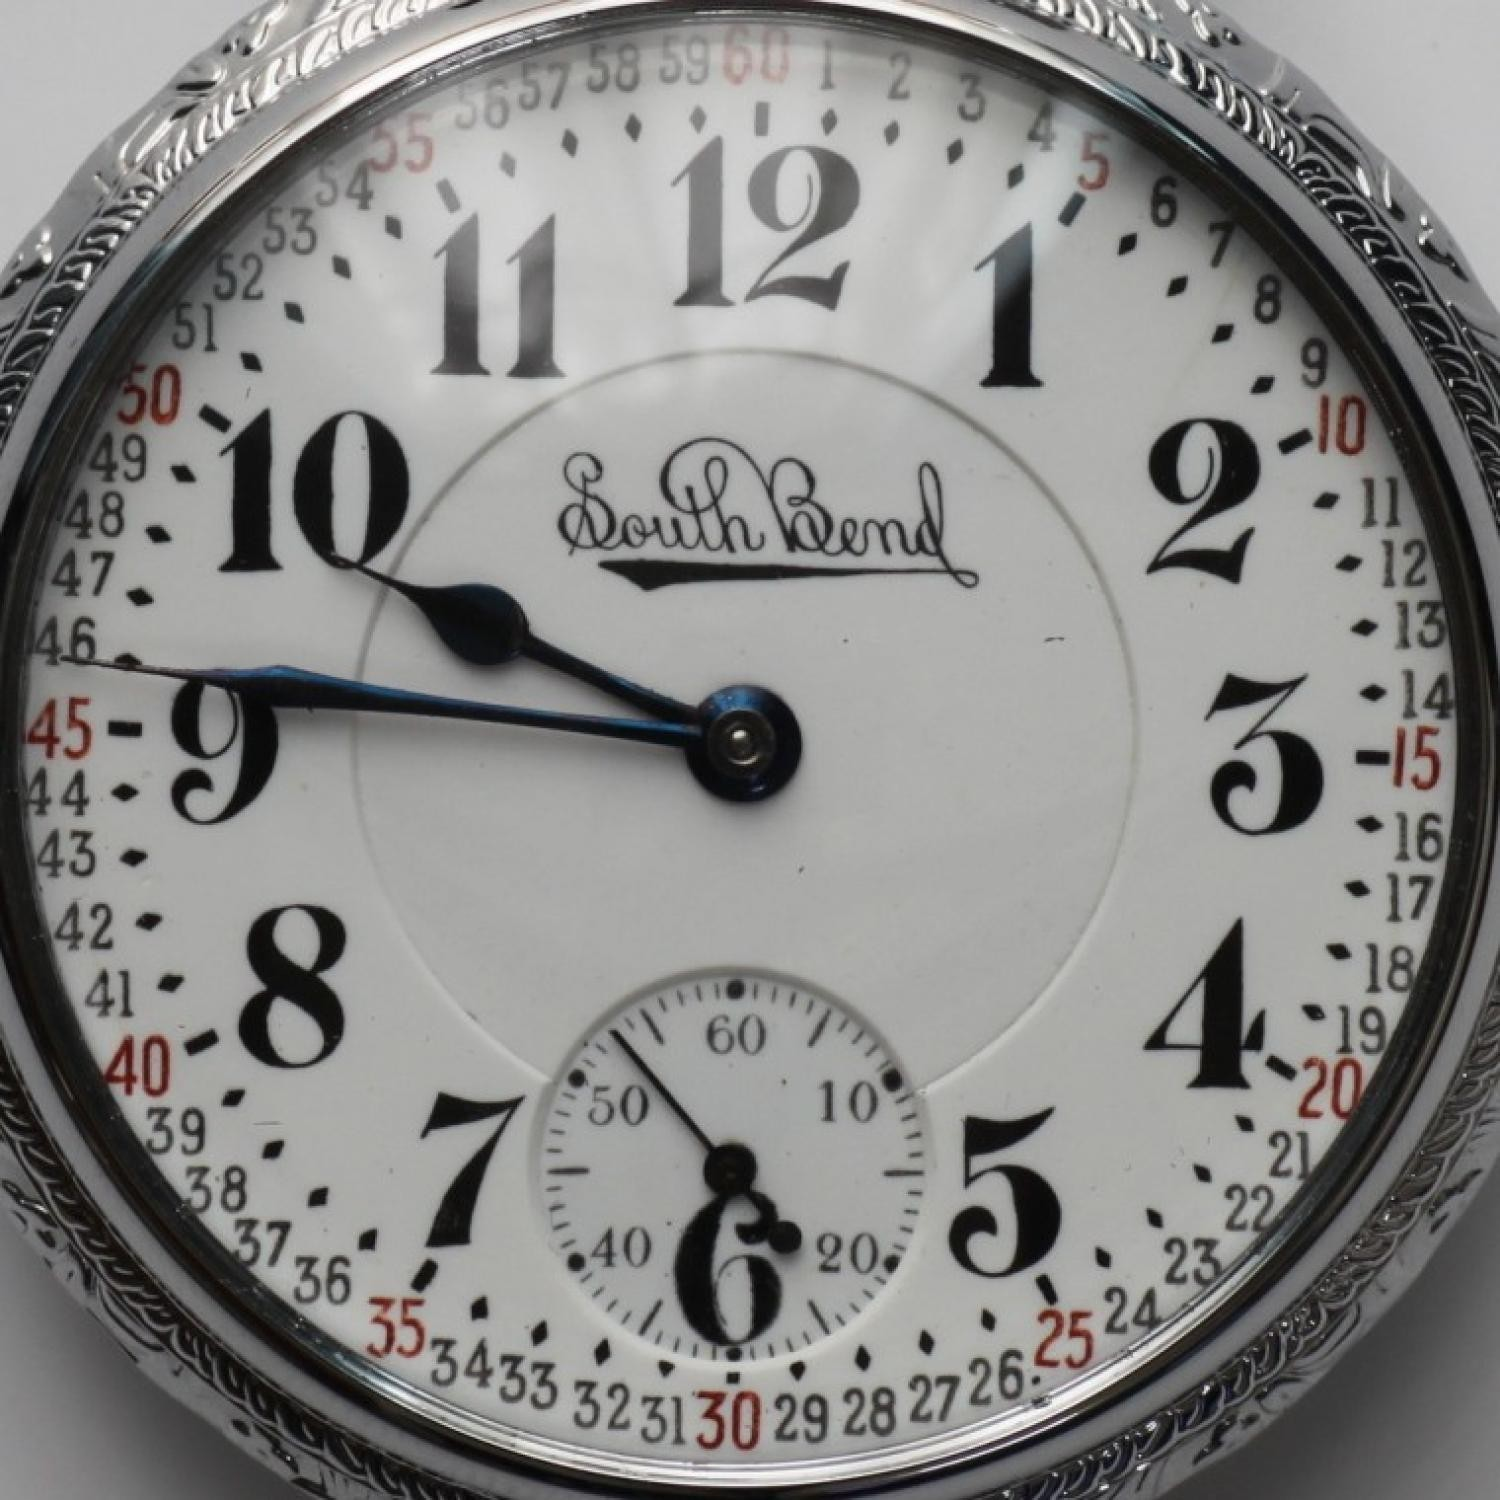 Image of South Bend 227 #714634 Dial